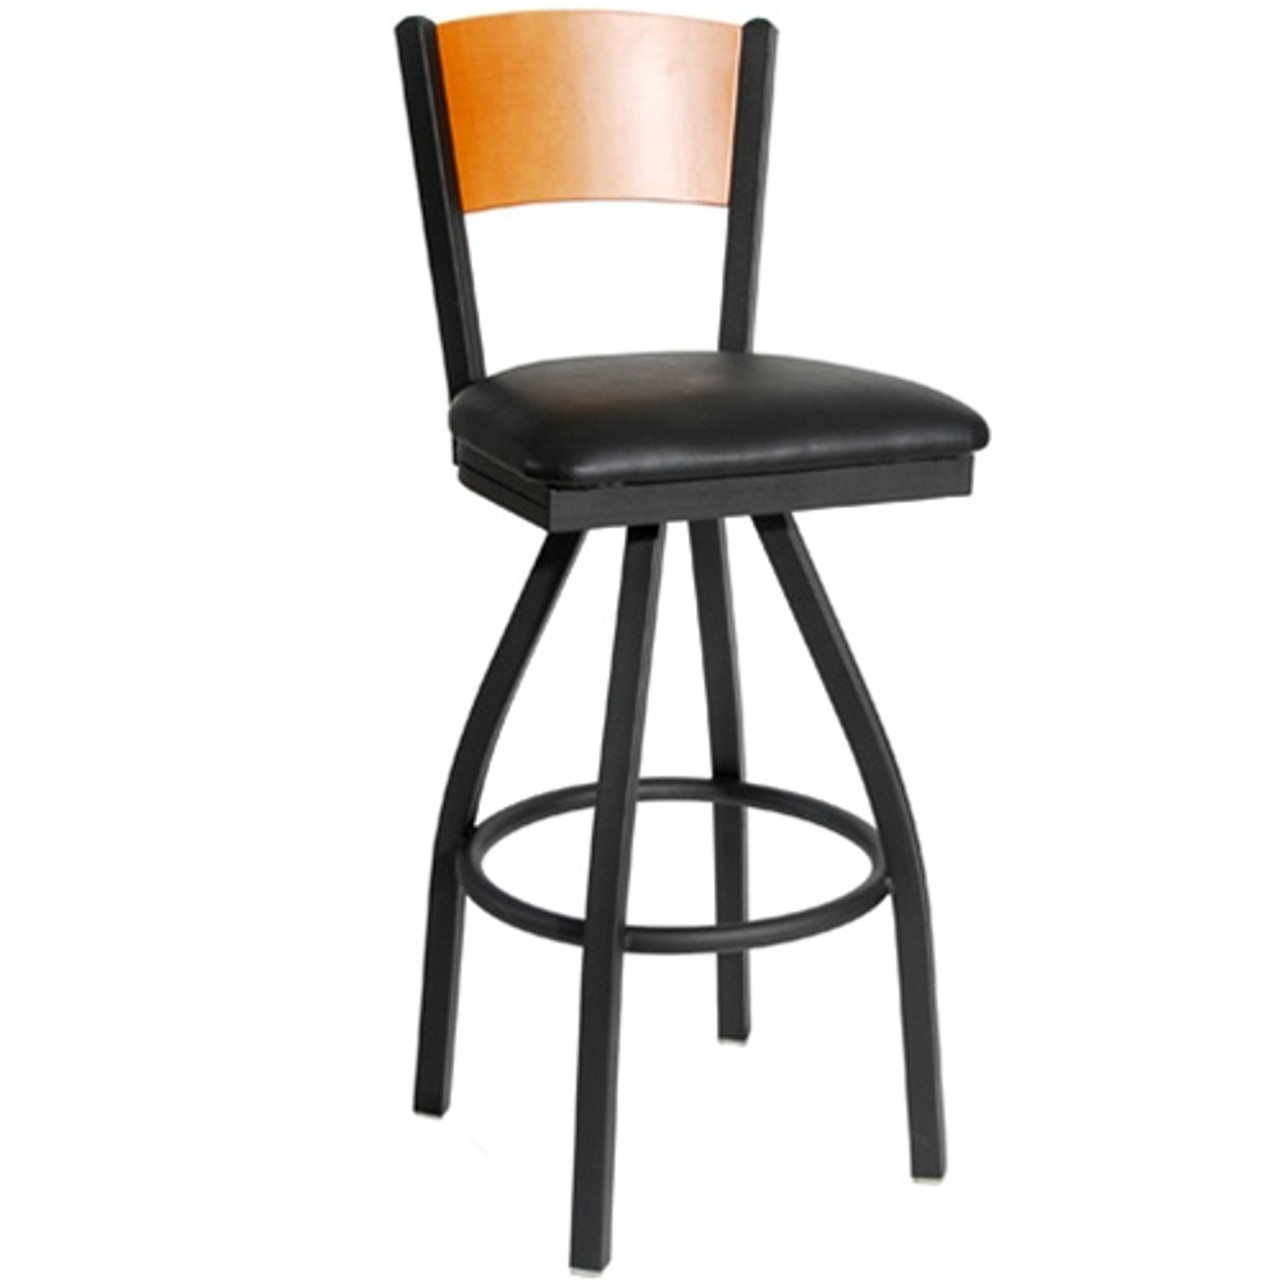 Strange Bfm Seating Dale Solid Wood Back Metal Restaurant Swivel Bar Stool With Vinyl Seat 2150S Sbv Machost Co Dining Chair Design Ideas Machostcouk